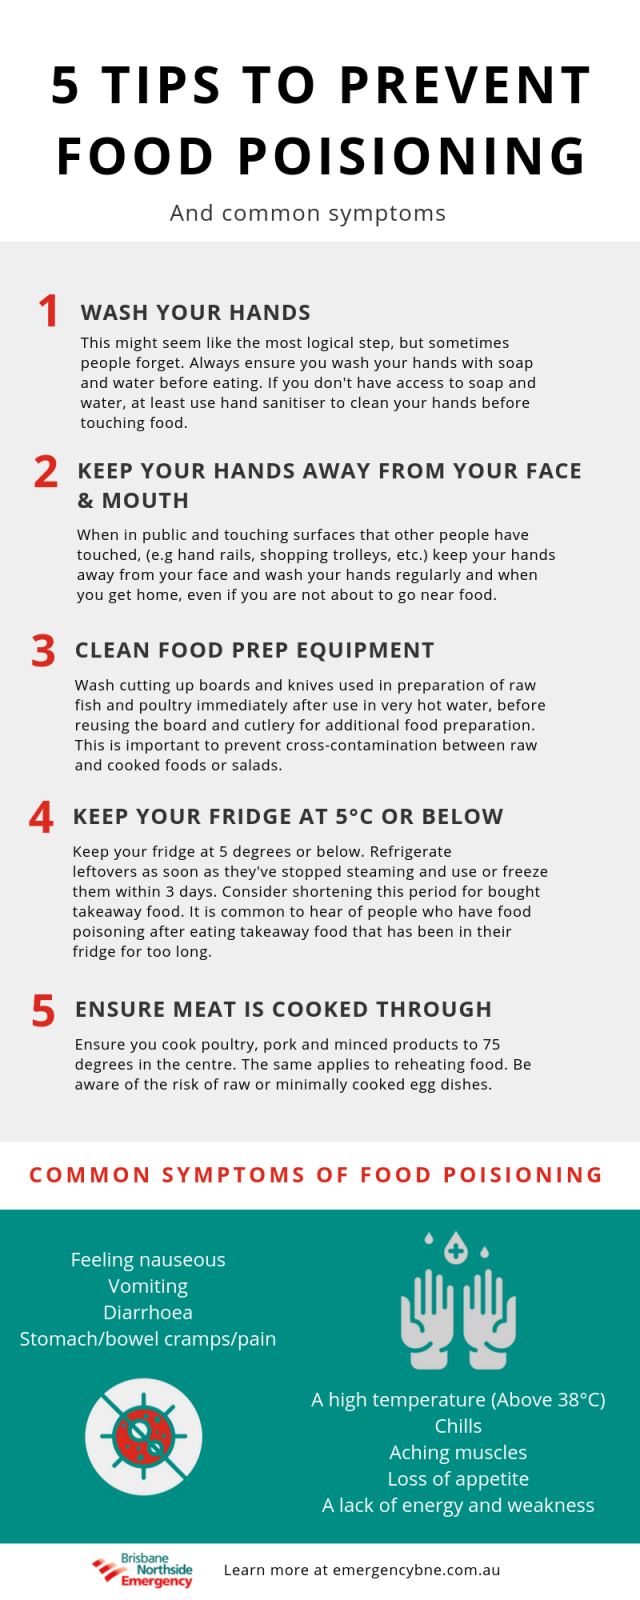 Tips to Prevent Food Poisoning